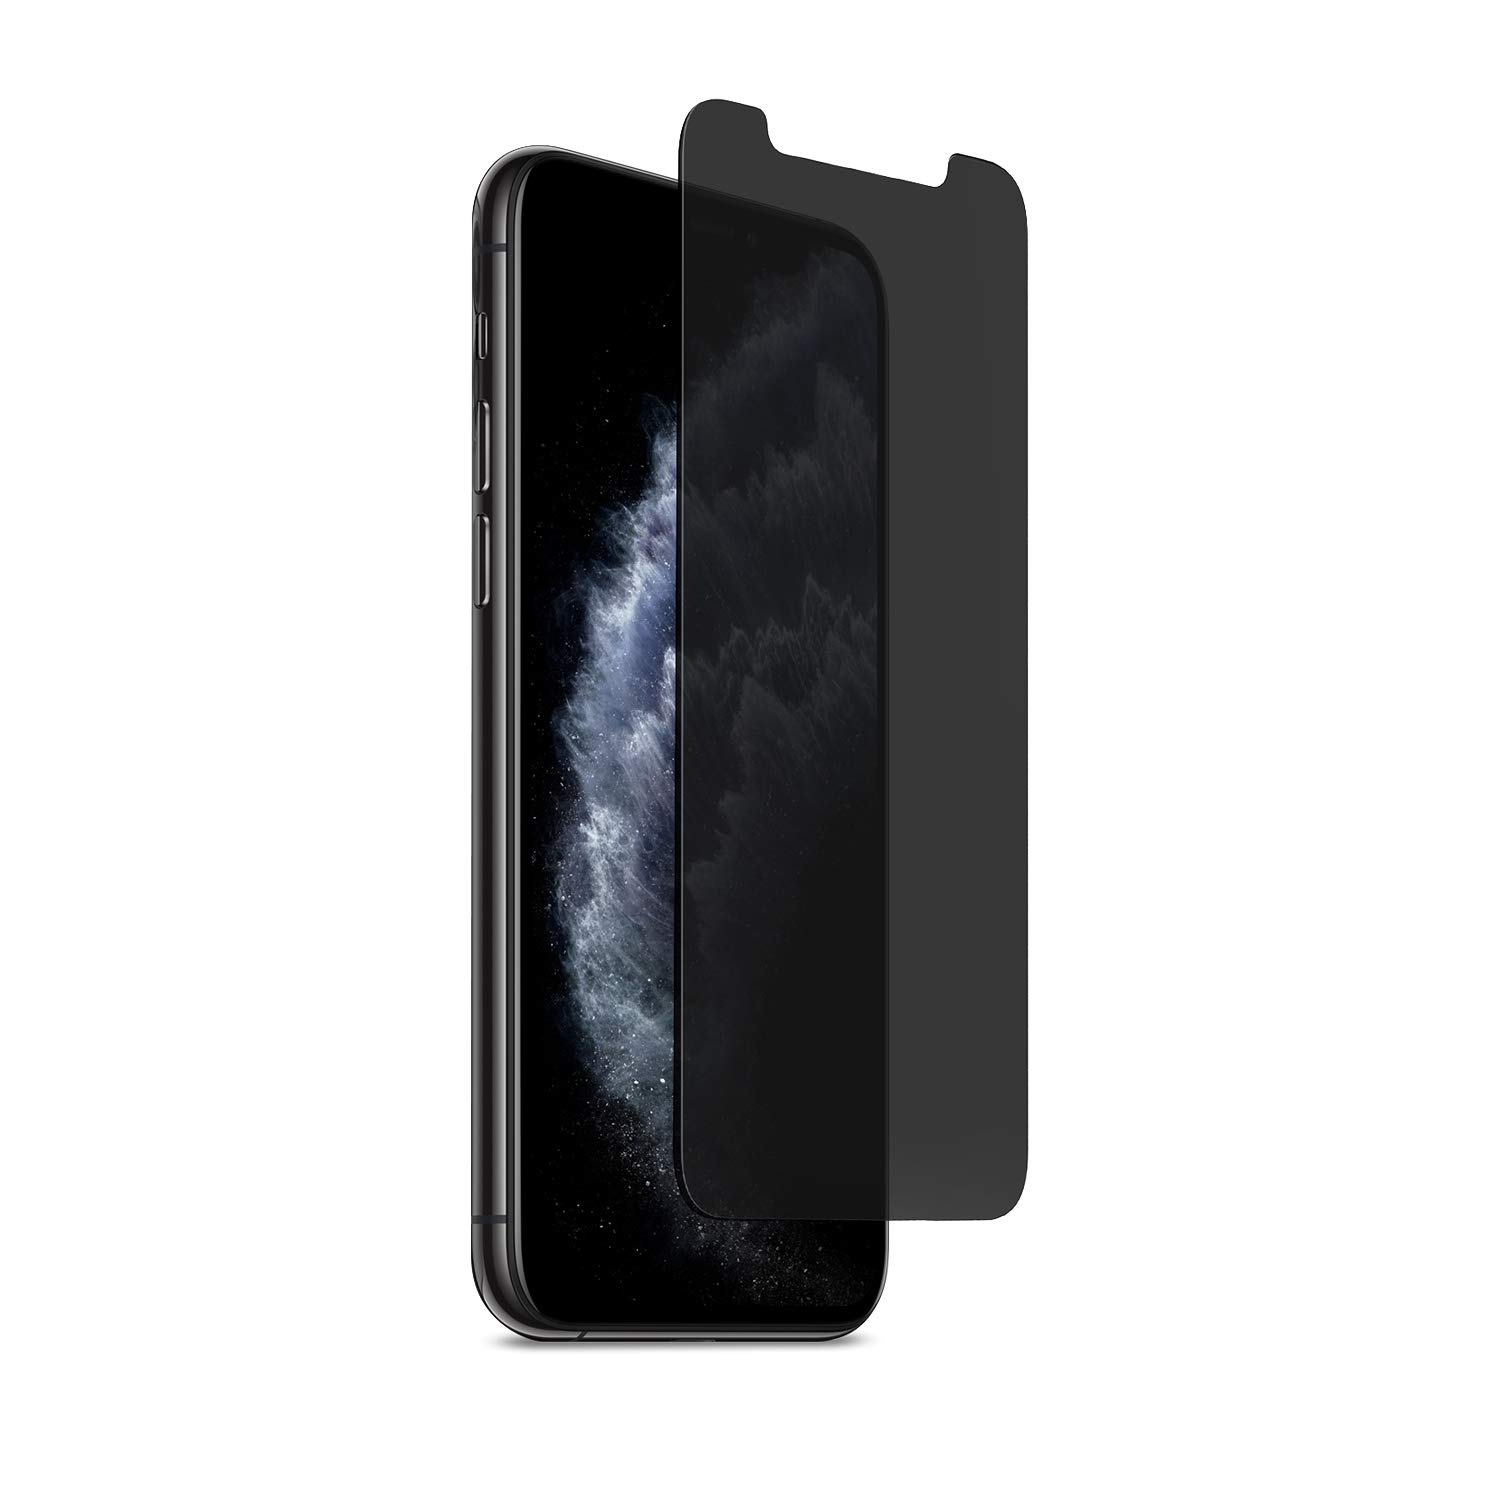 PureGear 2-Way Privacy Tempered Glass Screen Protector Compatible w/Apple iPhone 11 Pro Max, Self Alignment Installation Tray, Touch Sensitive, Case Friendly, Protect Your Privacy Conceal Your Screen by PureGear